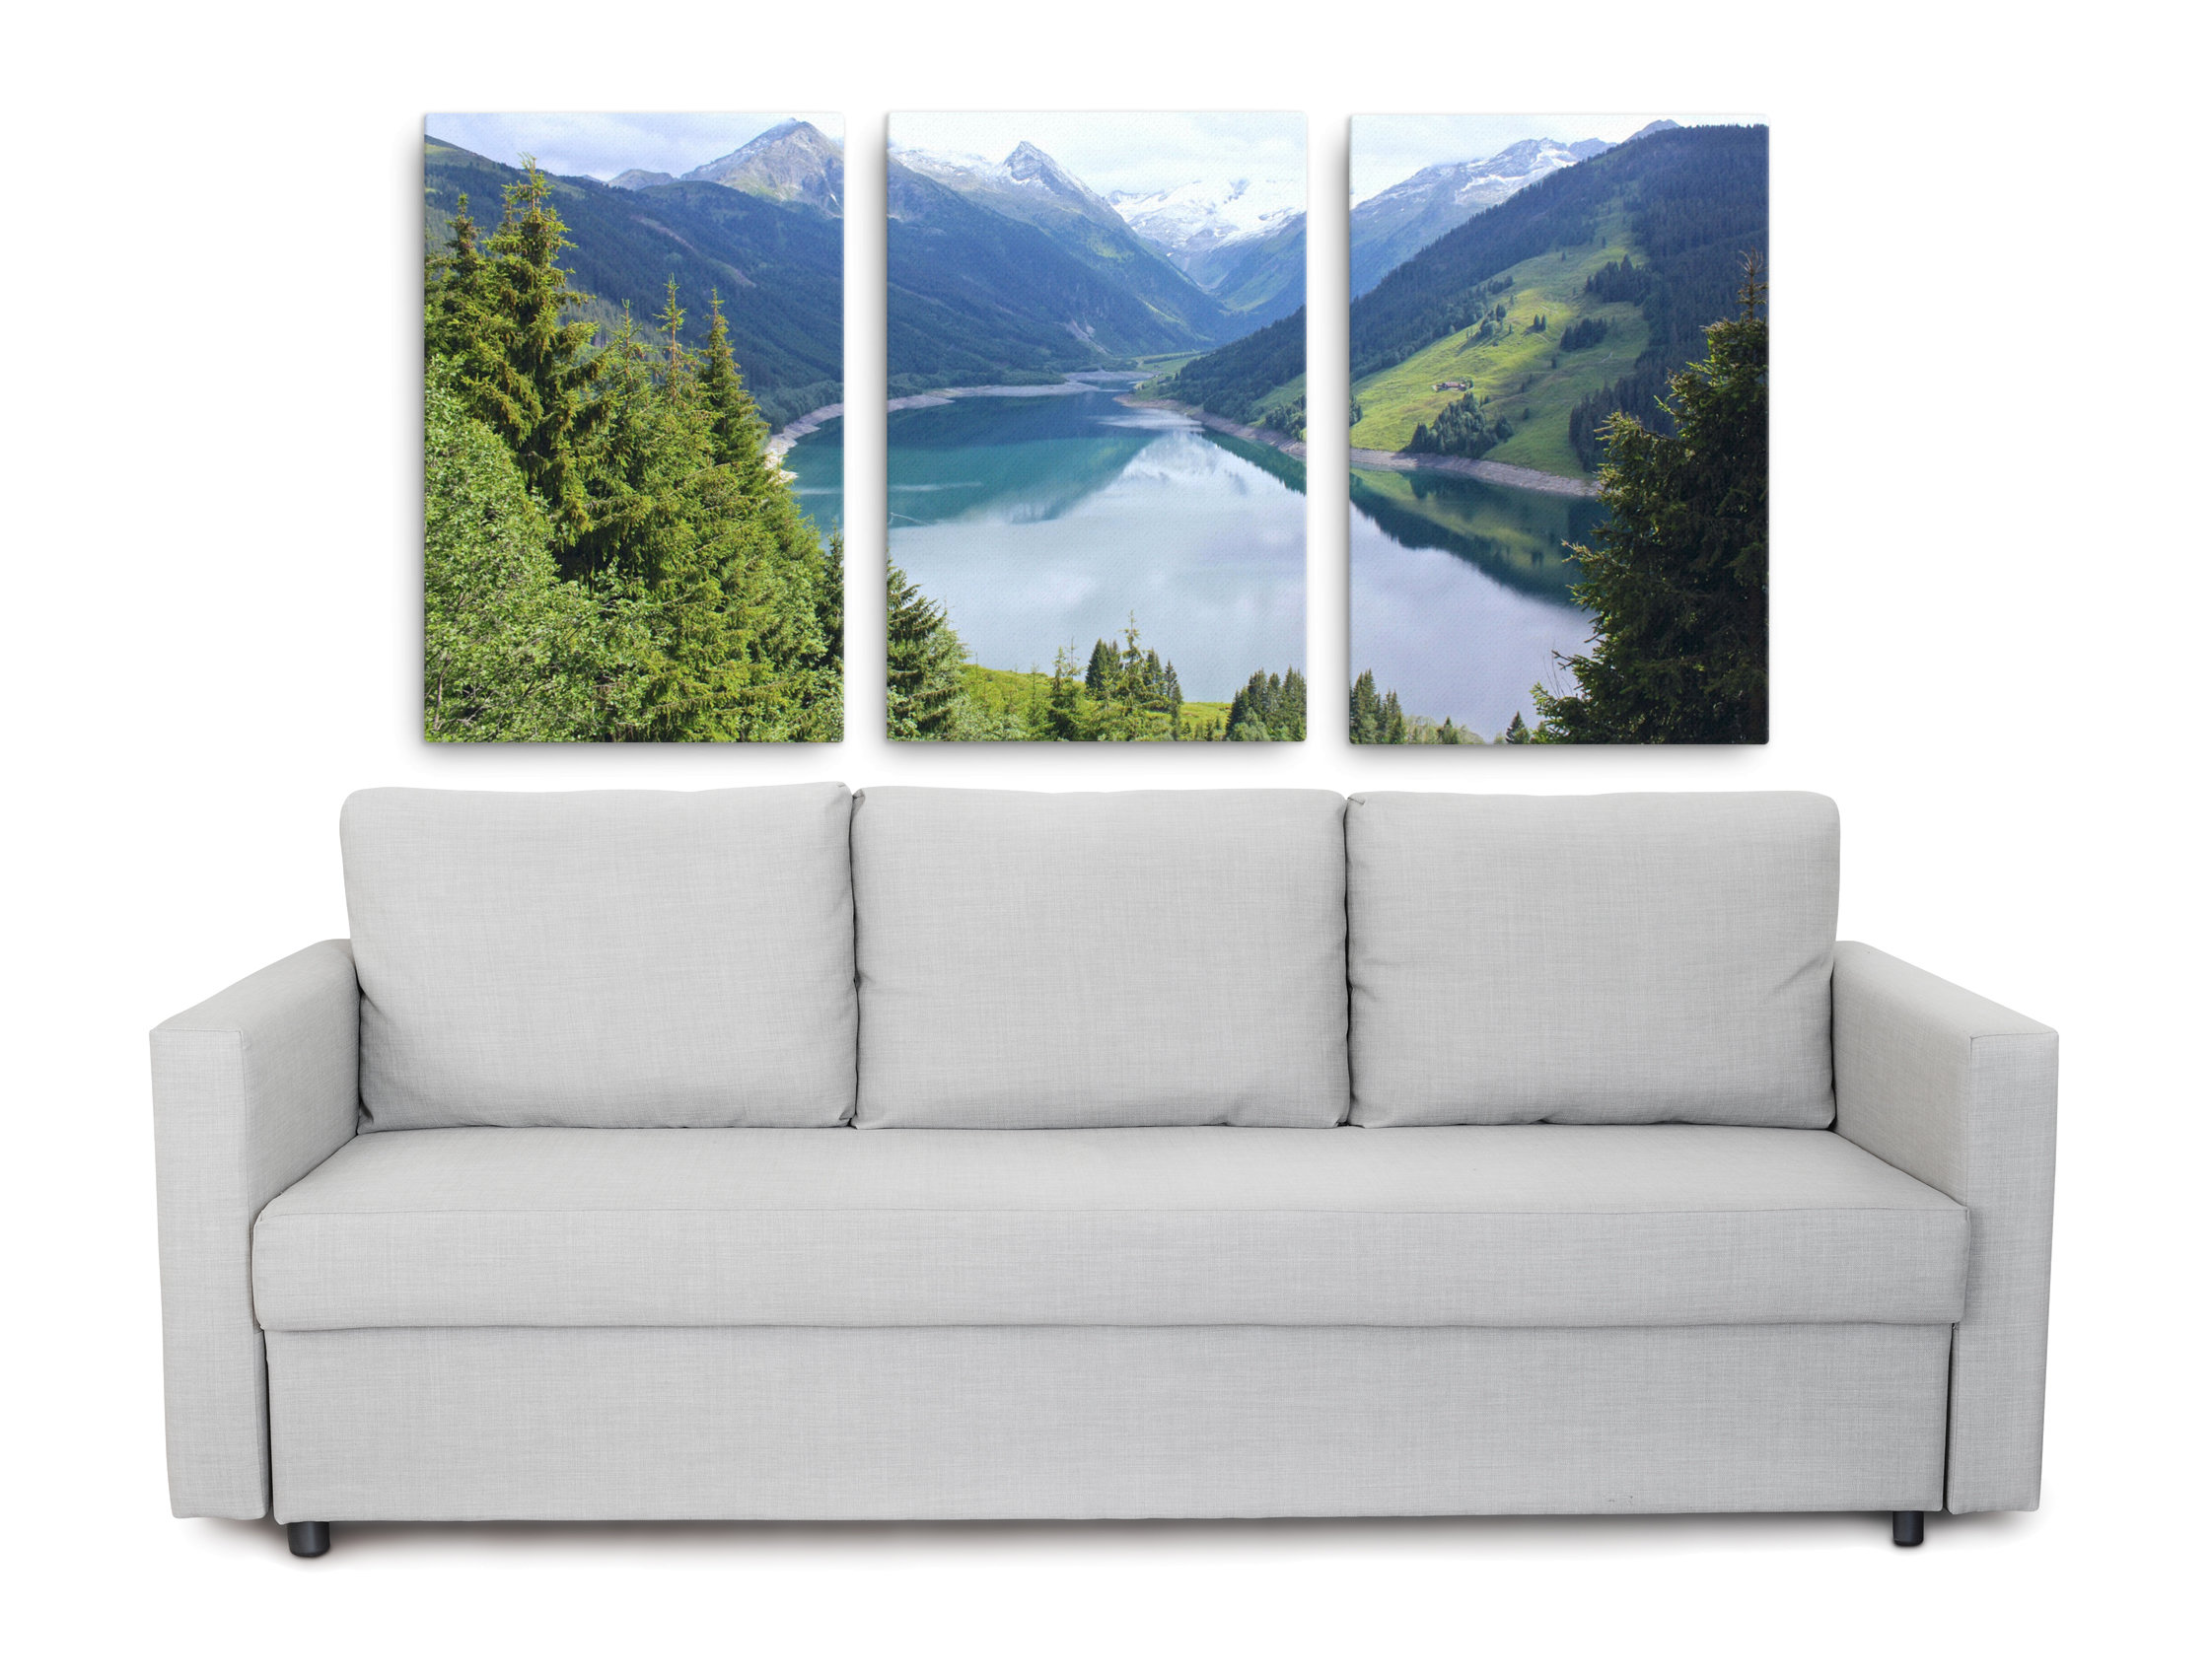 Product picture of alpine lake triptych canvas print